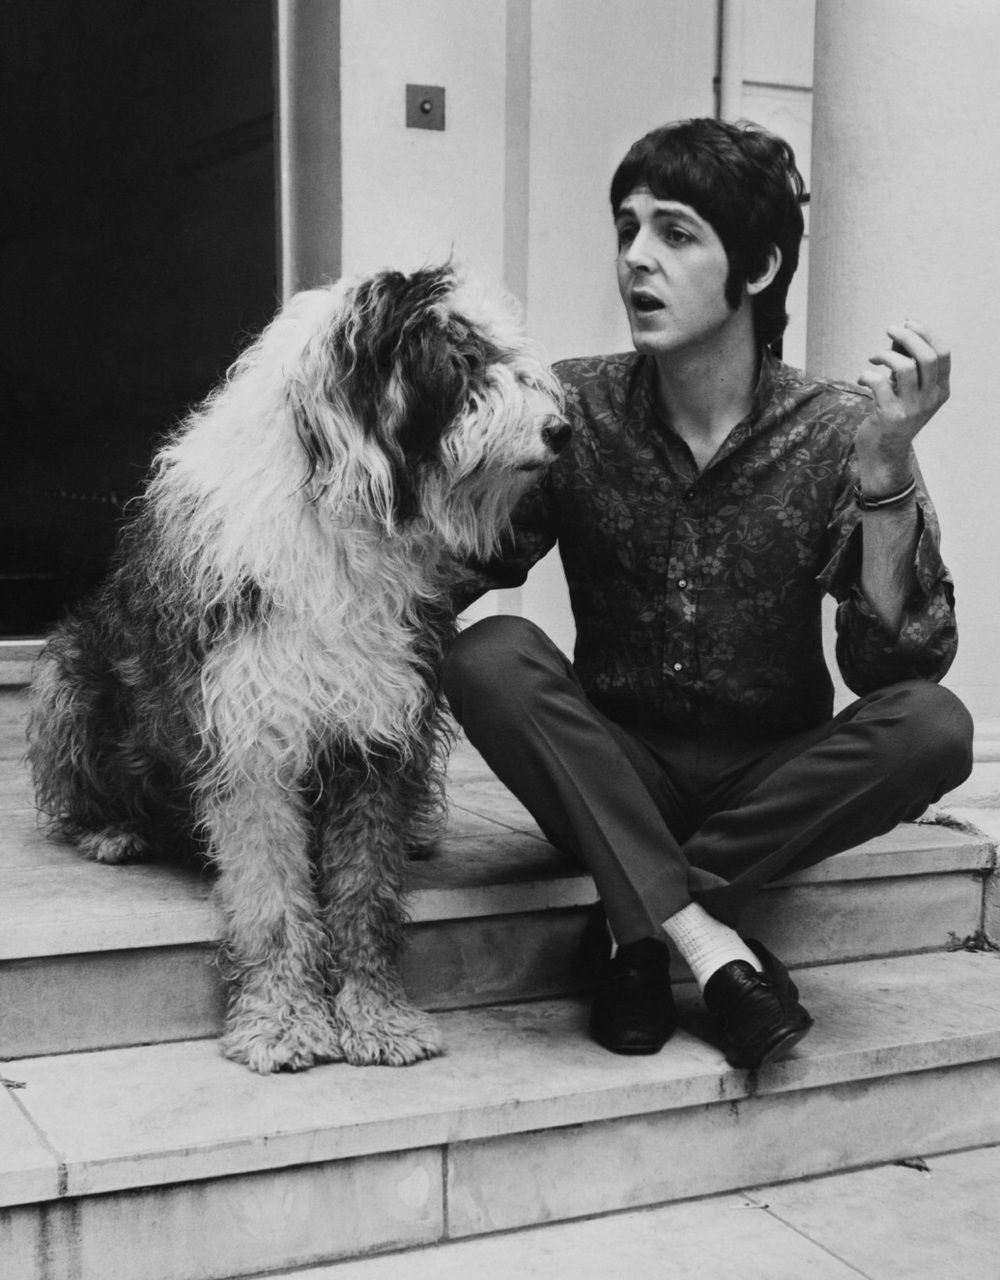 Paul McCartney with his sheepdog Martha, 1968.